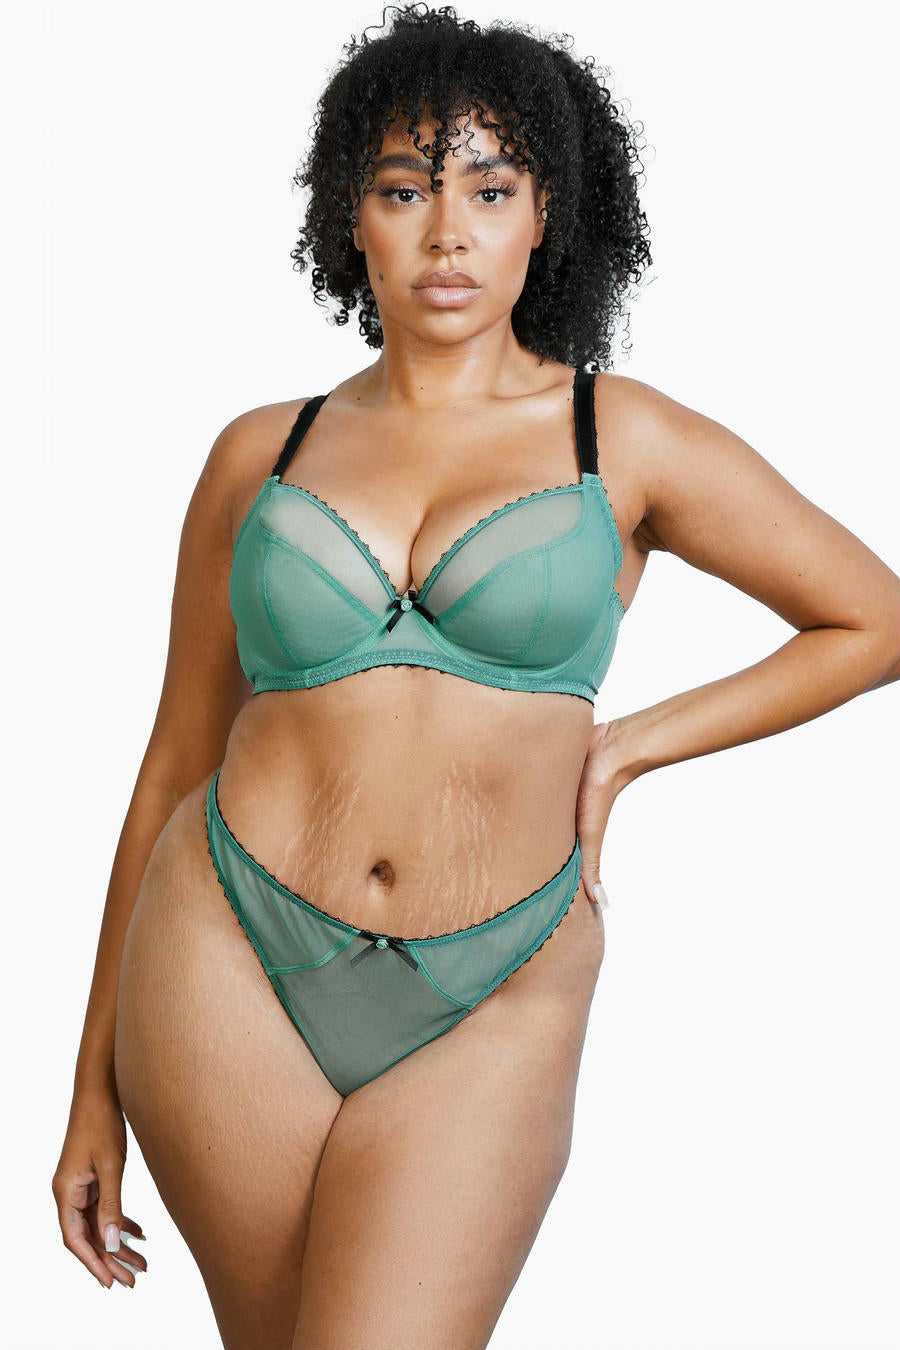 Deja Day Grace in Green Moss + Black Thong 4-16